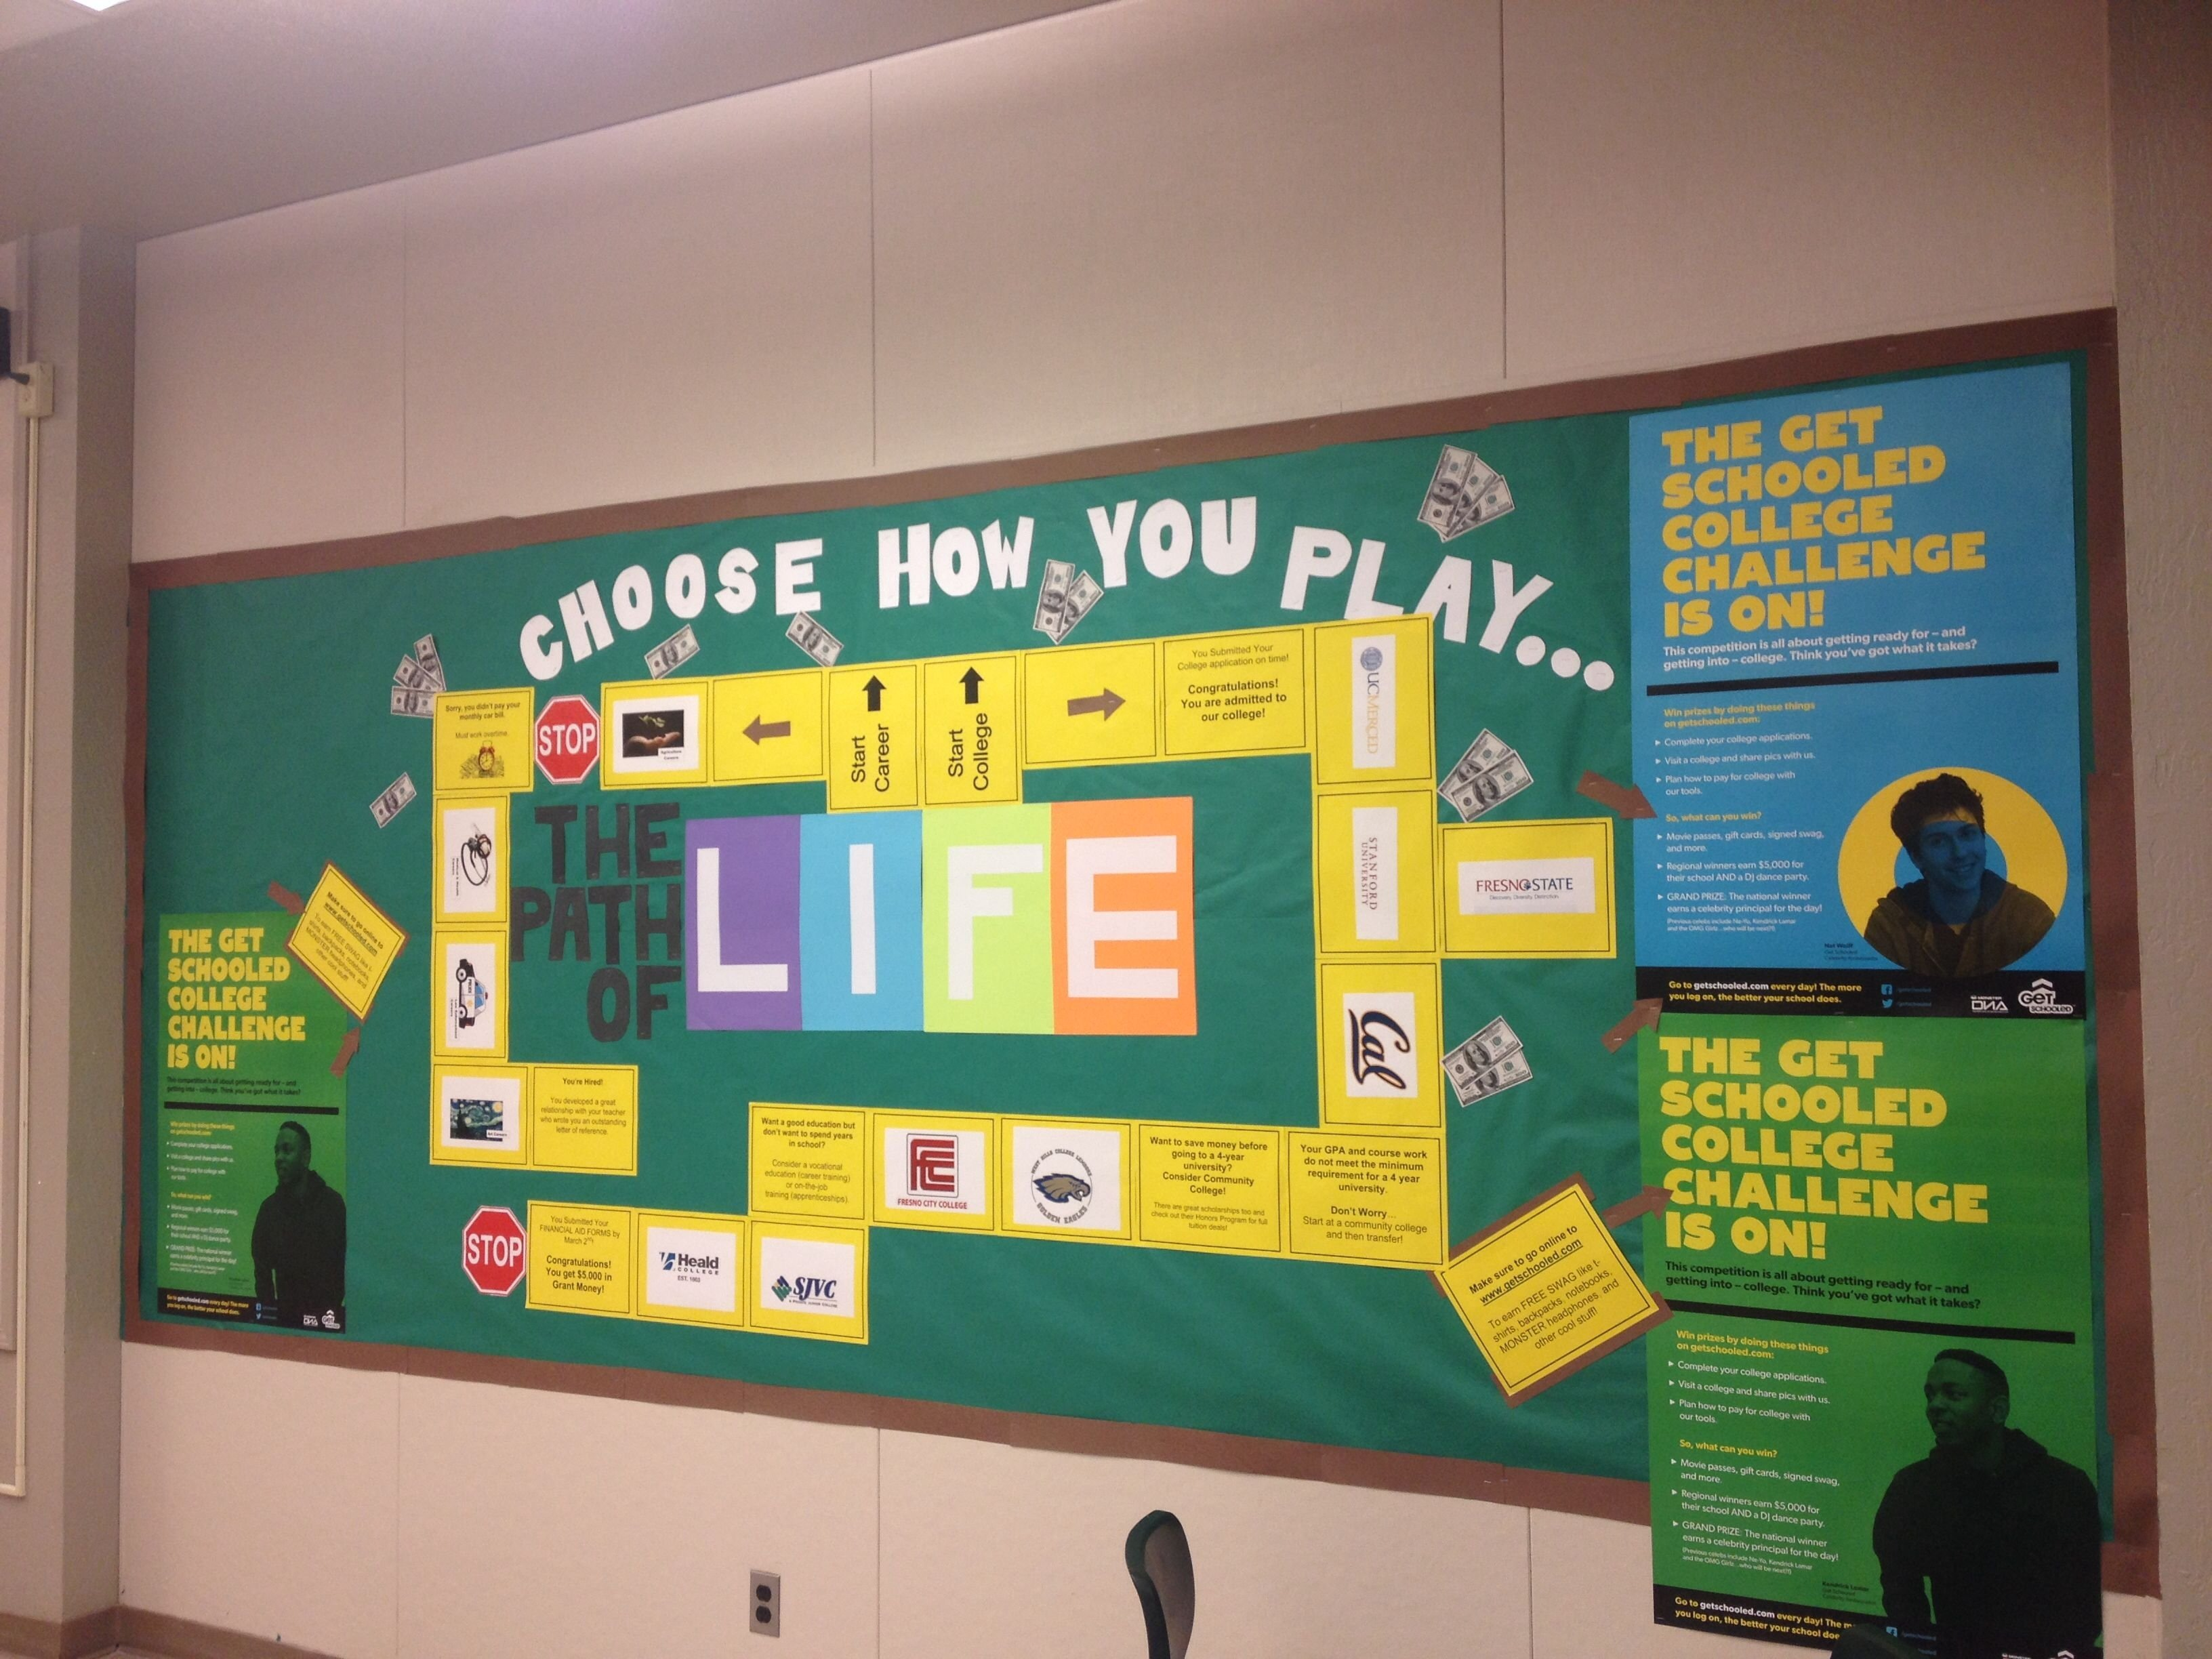 10 Stylish Bulletin Board Ideas For Work college and career bulletin board work related pinterest 1 2020